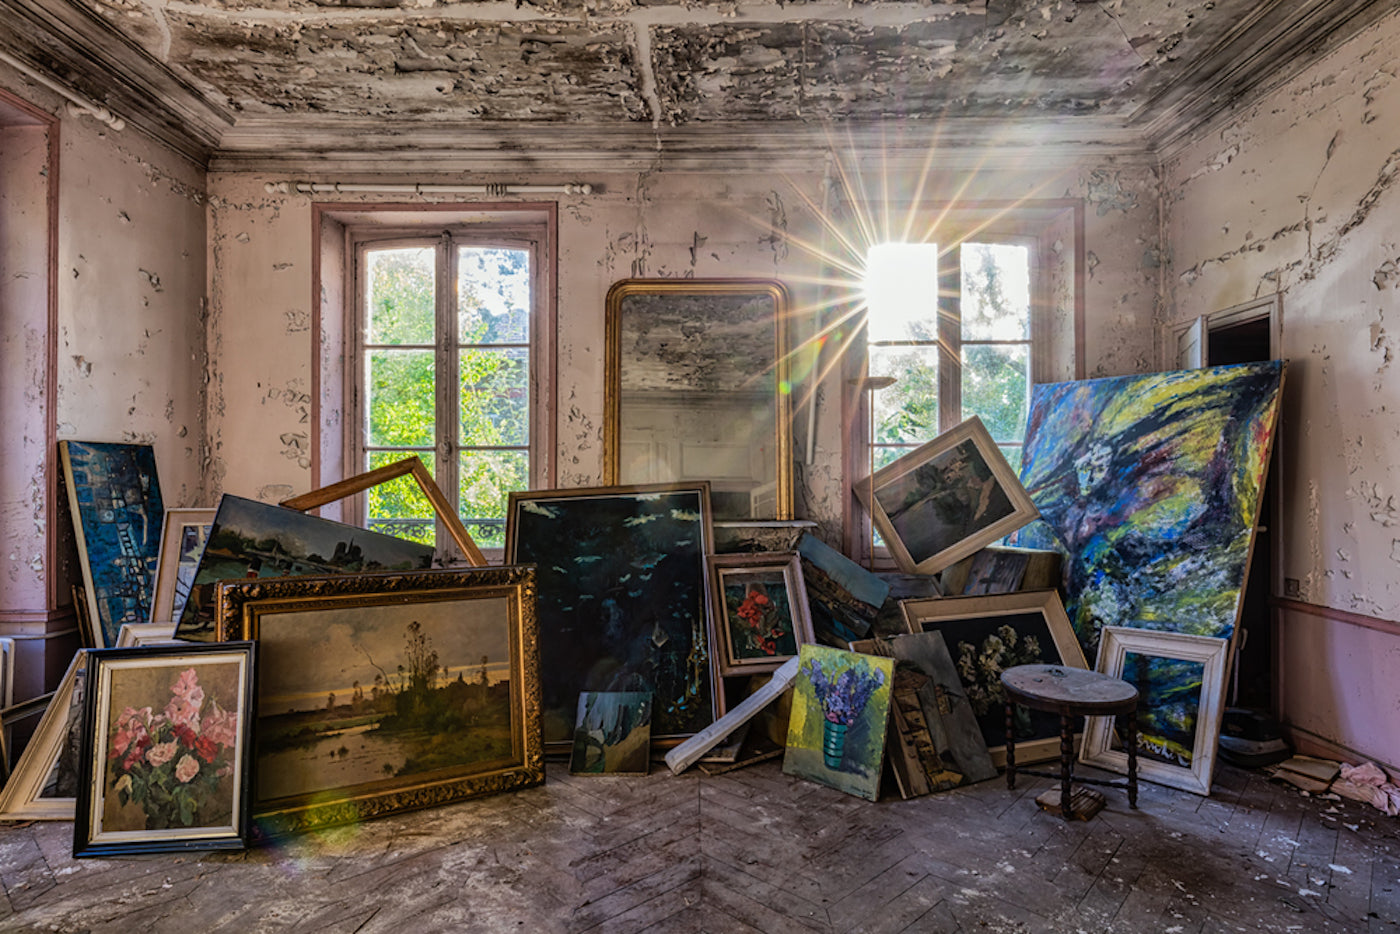 Abandoned Spaces by James Kerwin